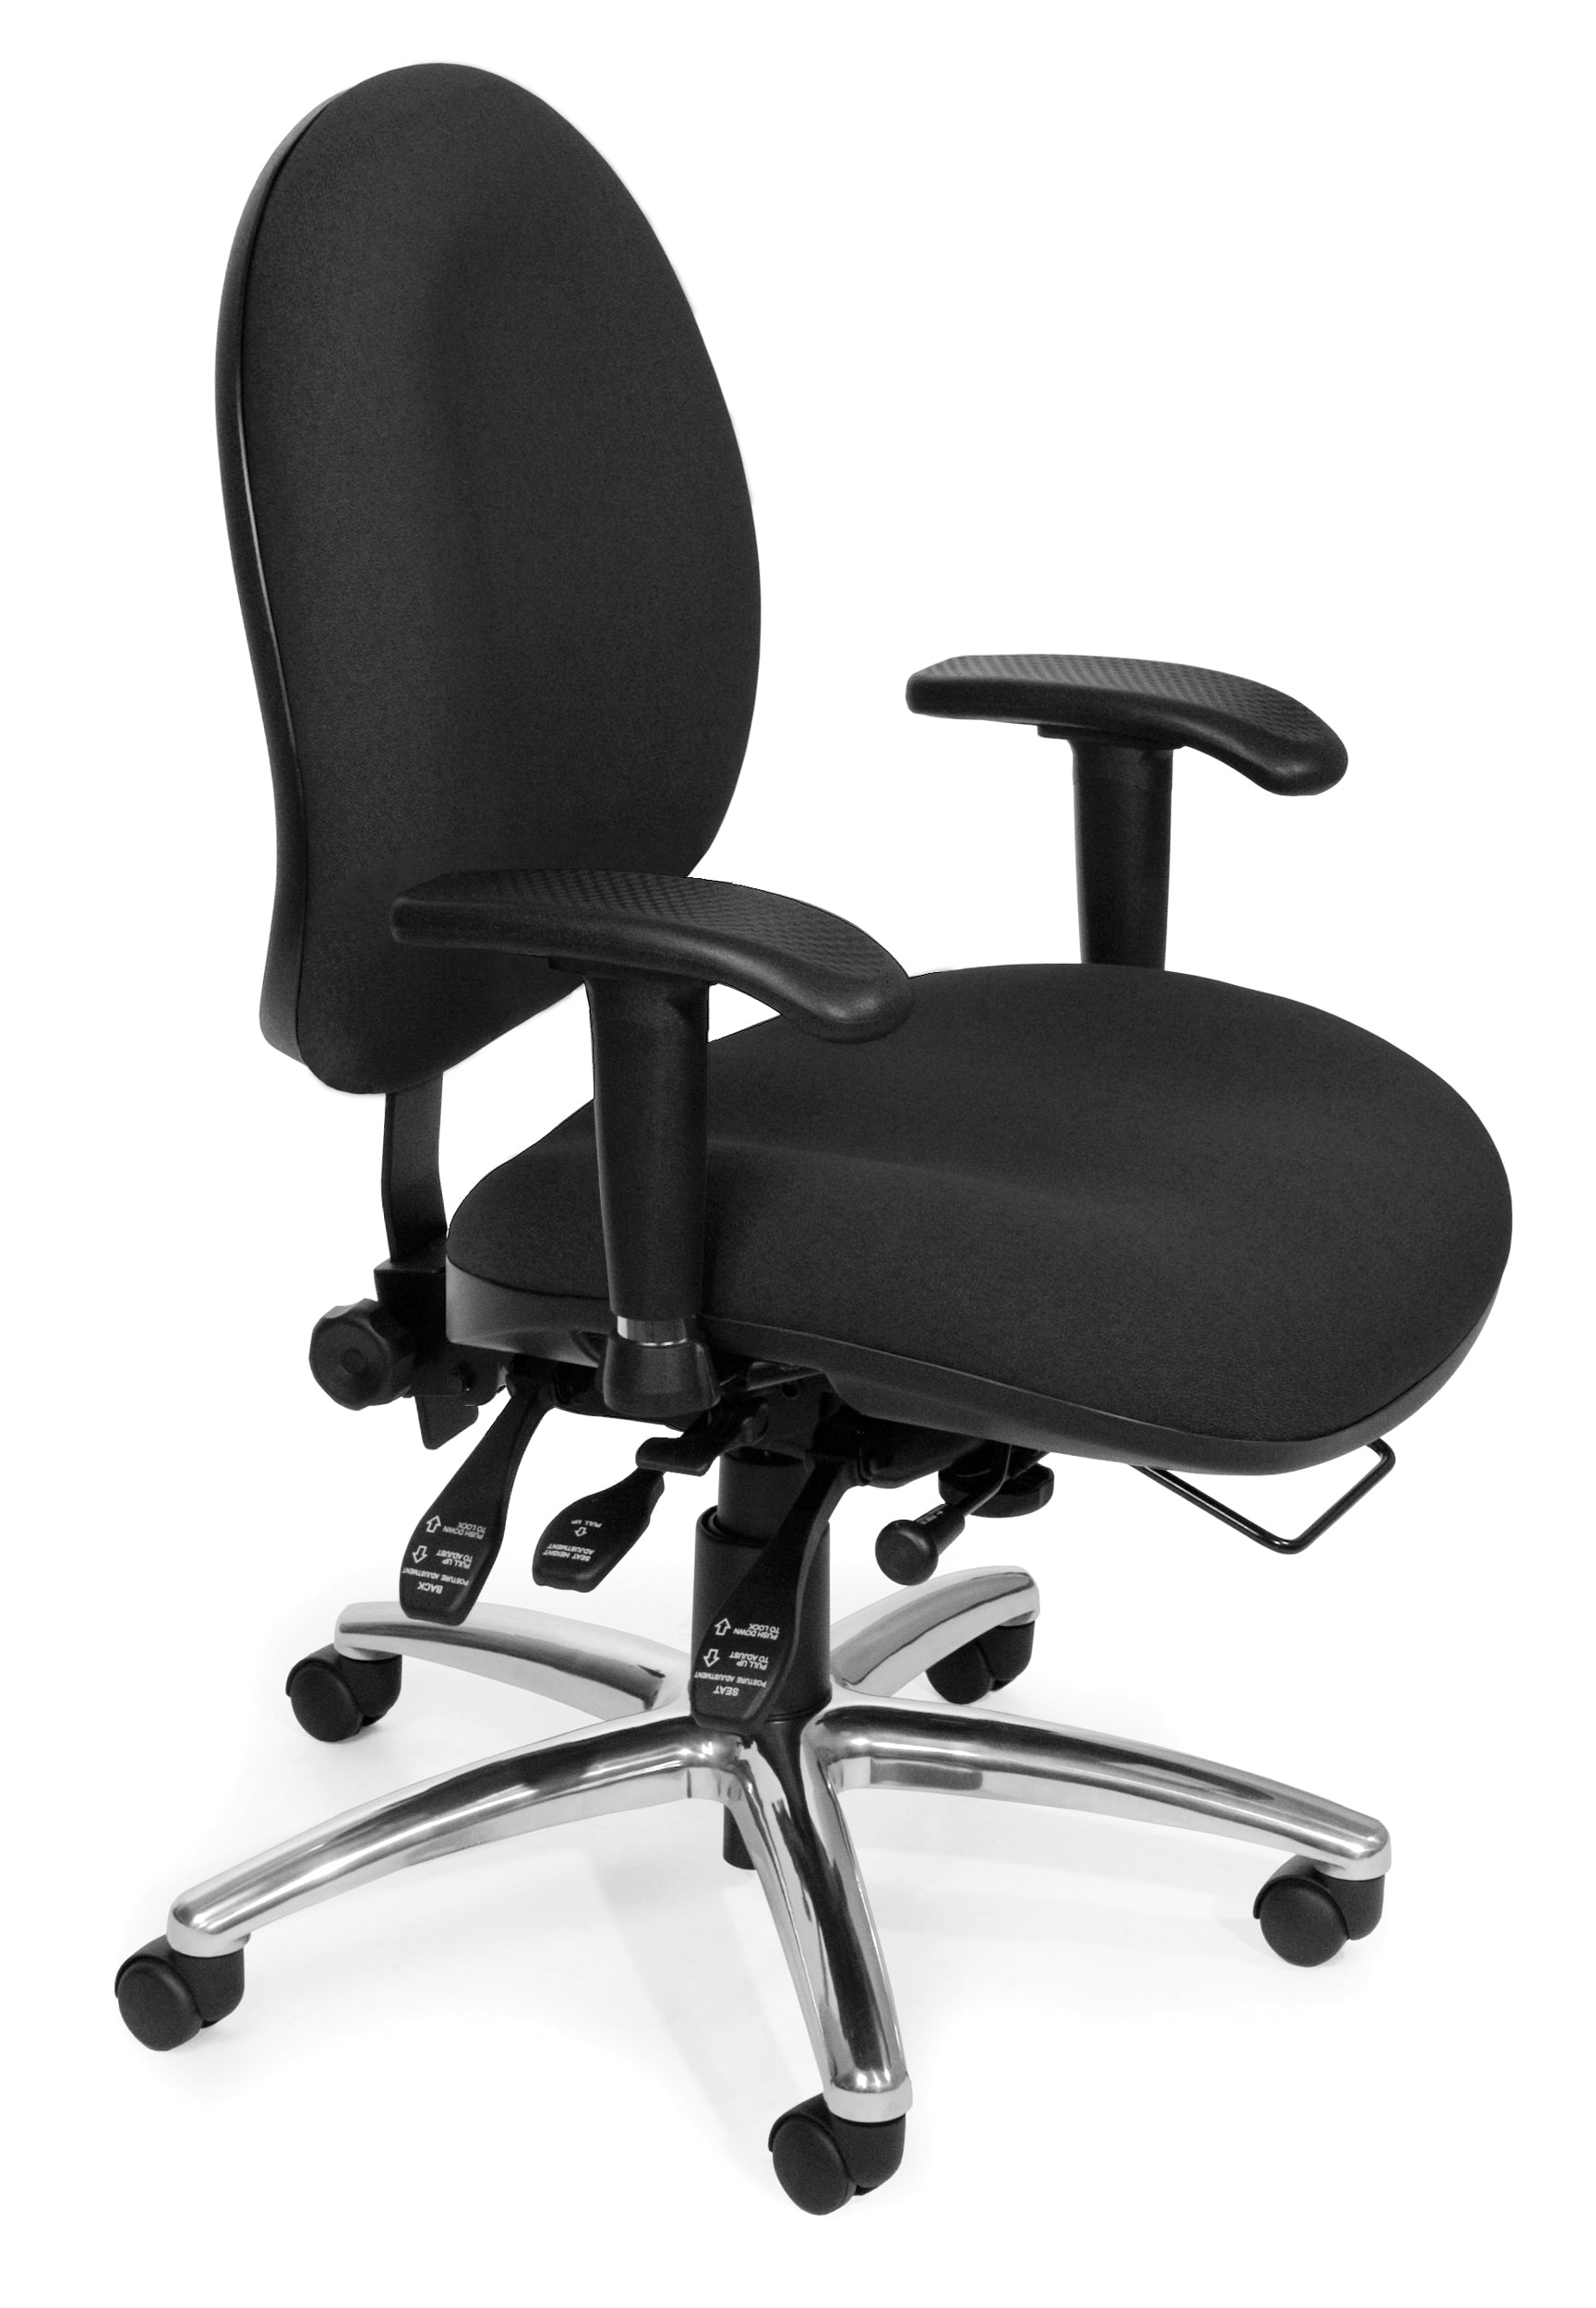 Ofminc Multi-Adjustable Ergonomic Upholstered Swivel Task Arms Chair